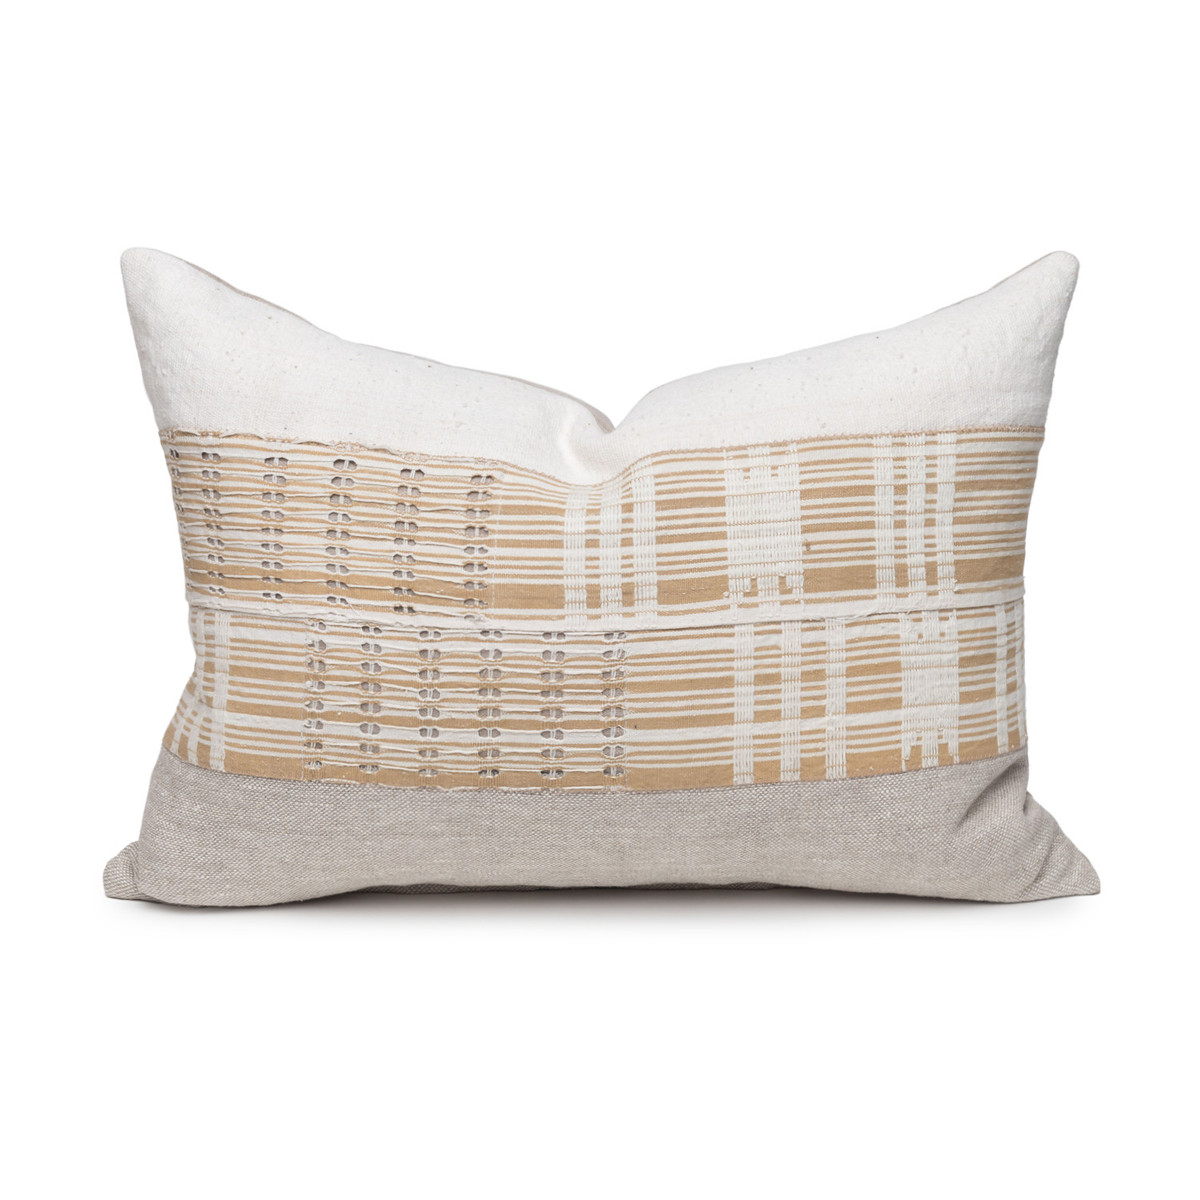 Gypsum Lumbar Pillow - Aso Oke Natural Linen Pillow with White Mud Cloth- 1622 - Front View